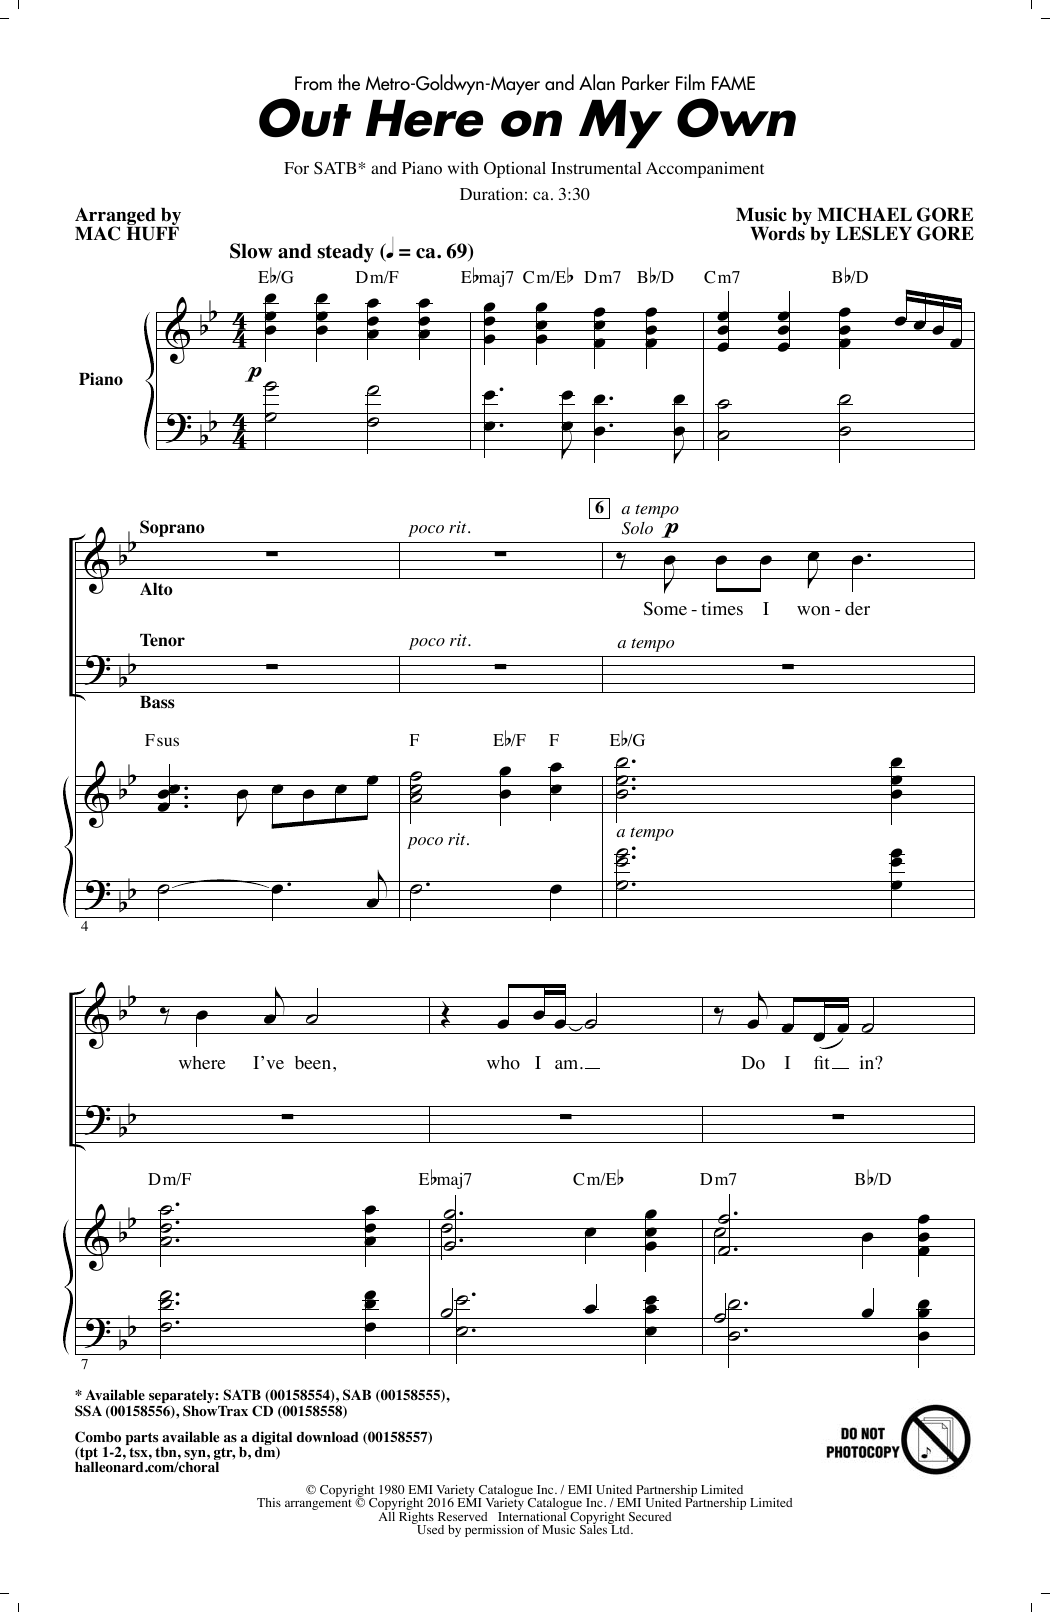 Out Here On My Own (from Fame) (arr. Mac Huff) (SATB Choir)